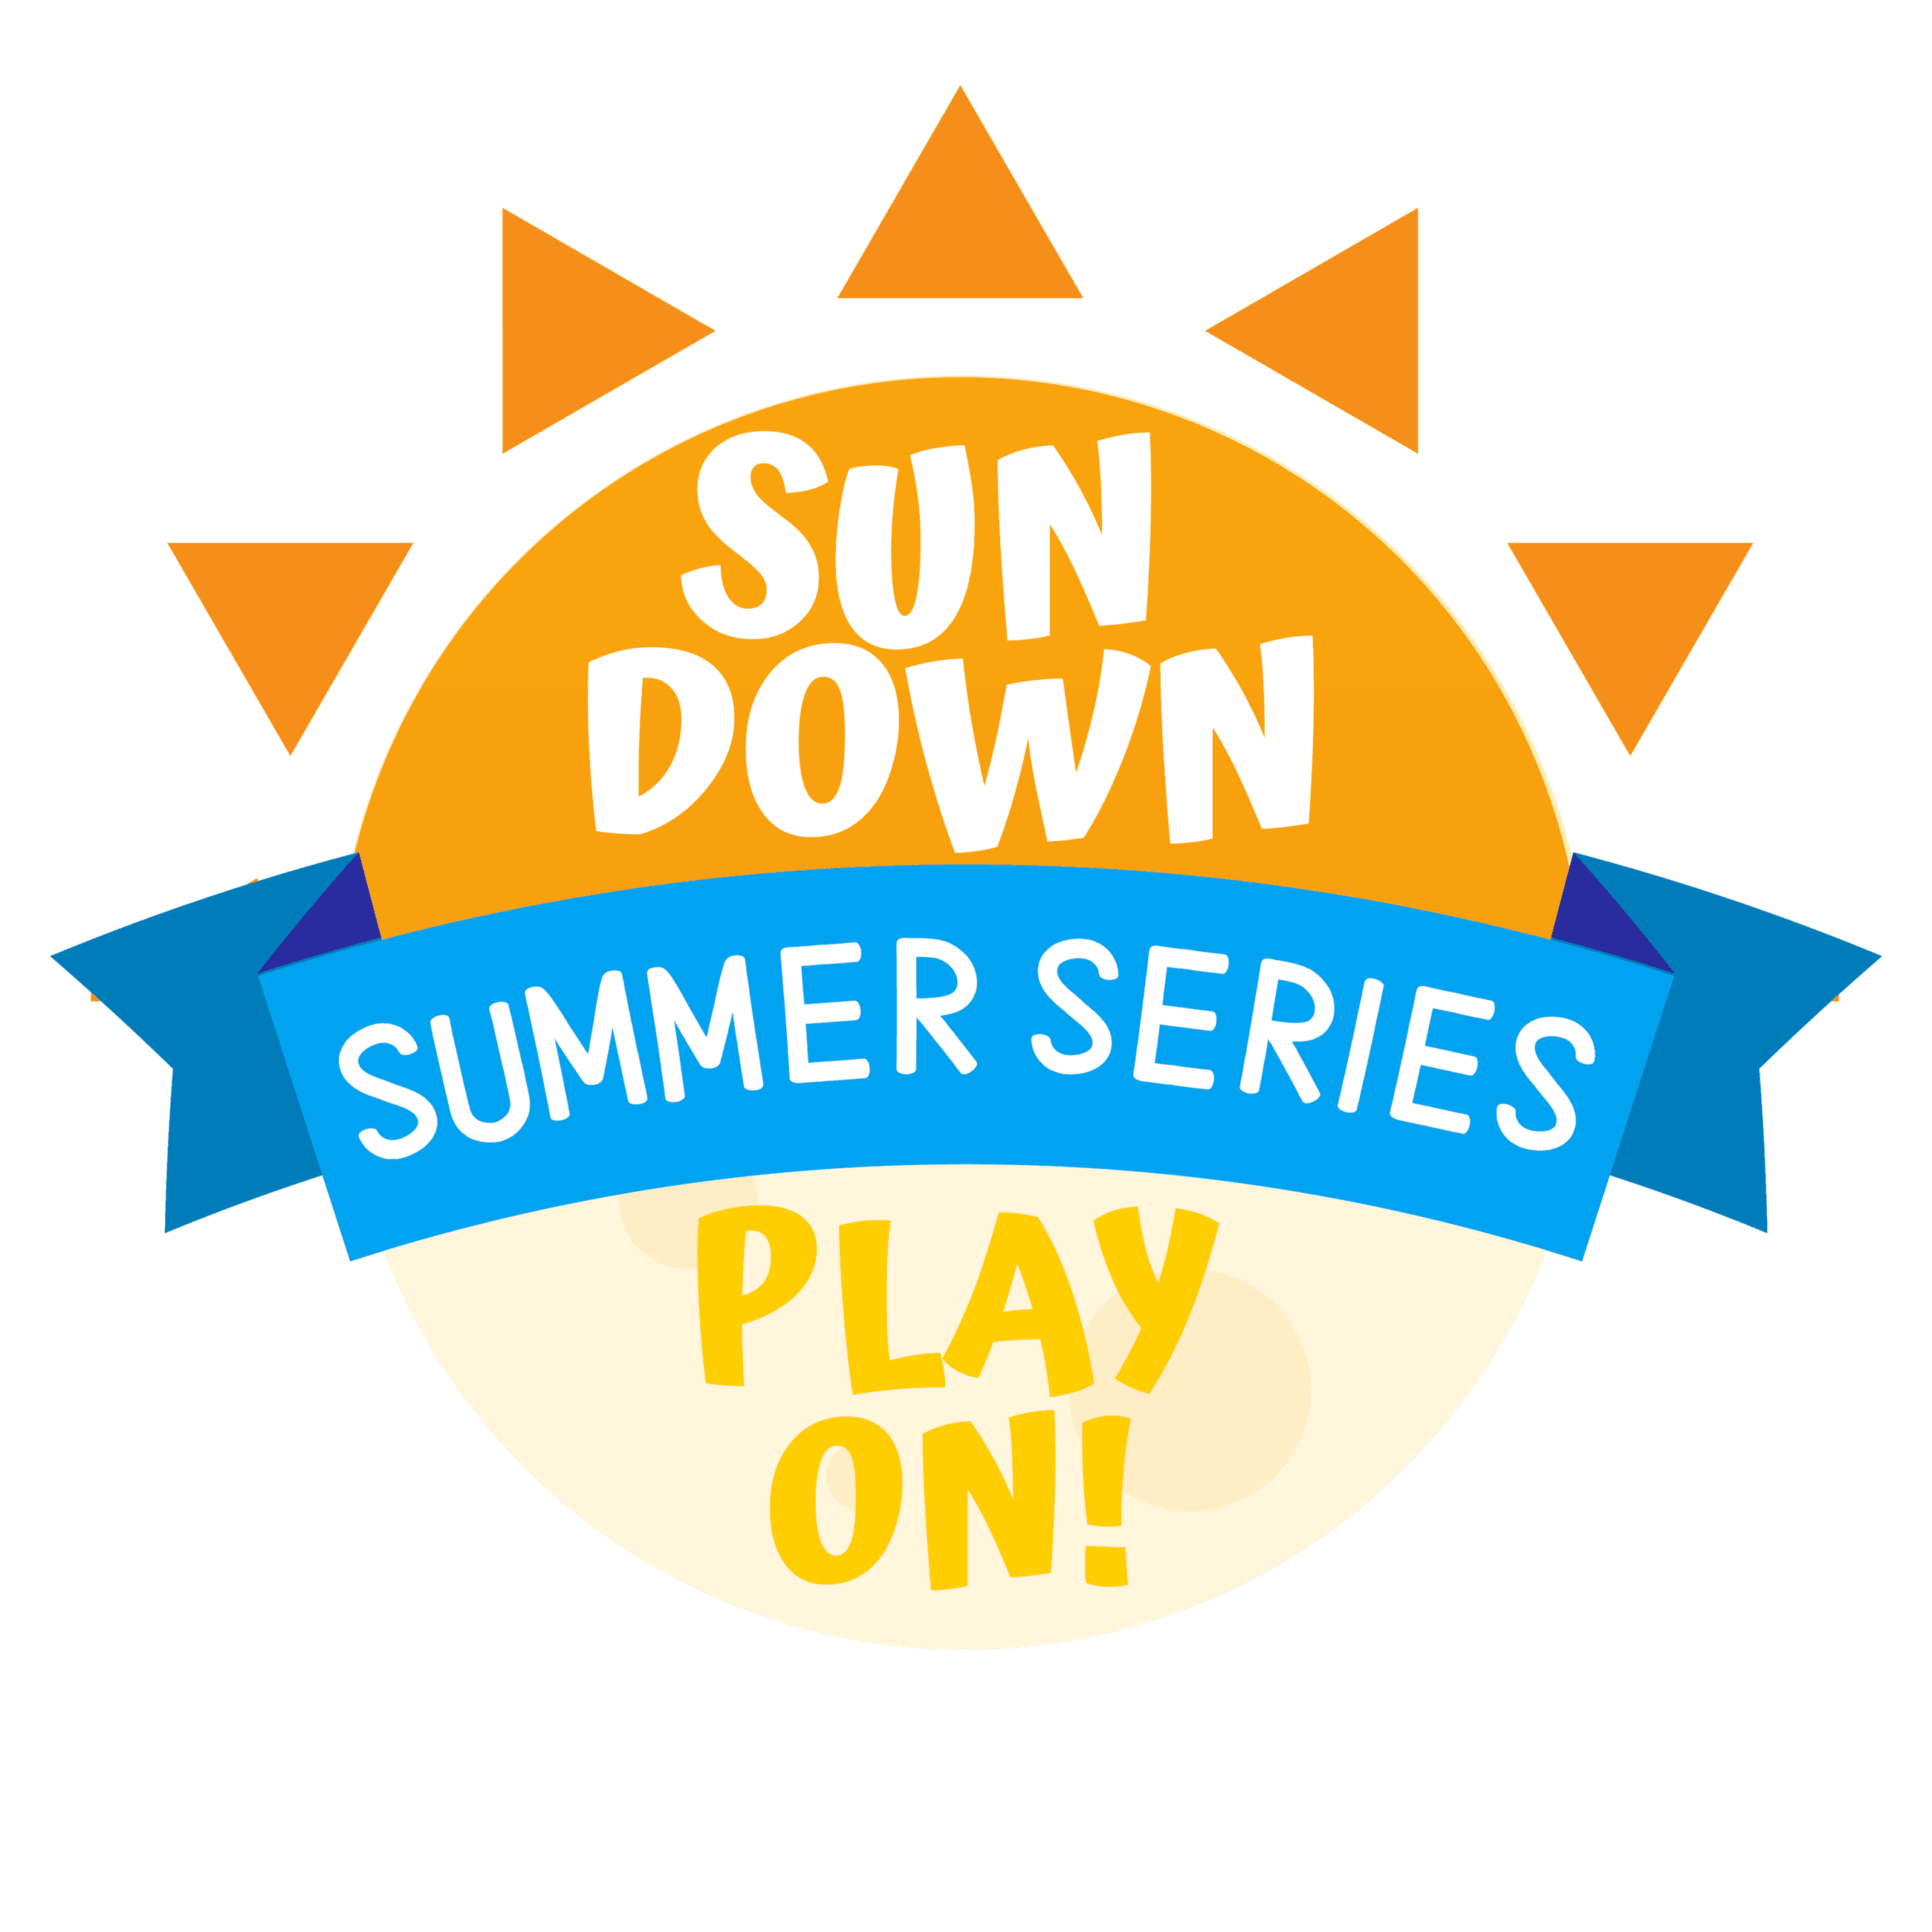 LOGO FOR SUN DOWN PLAY ON SERIES